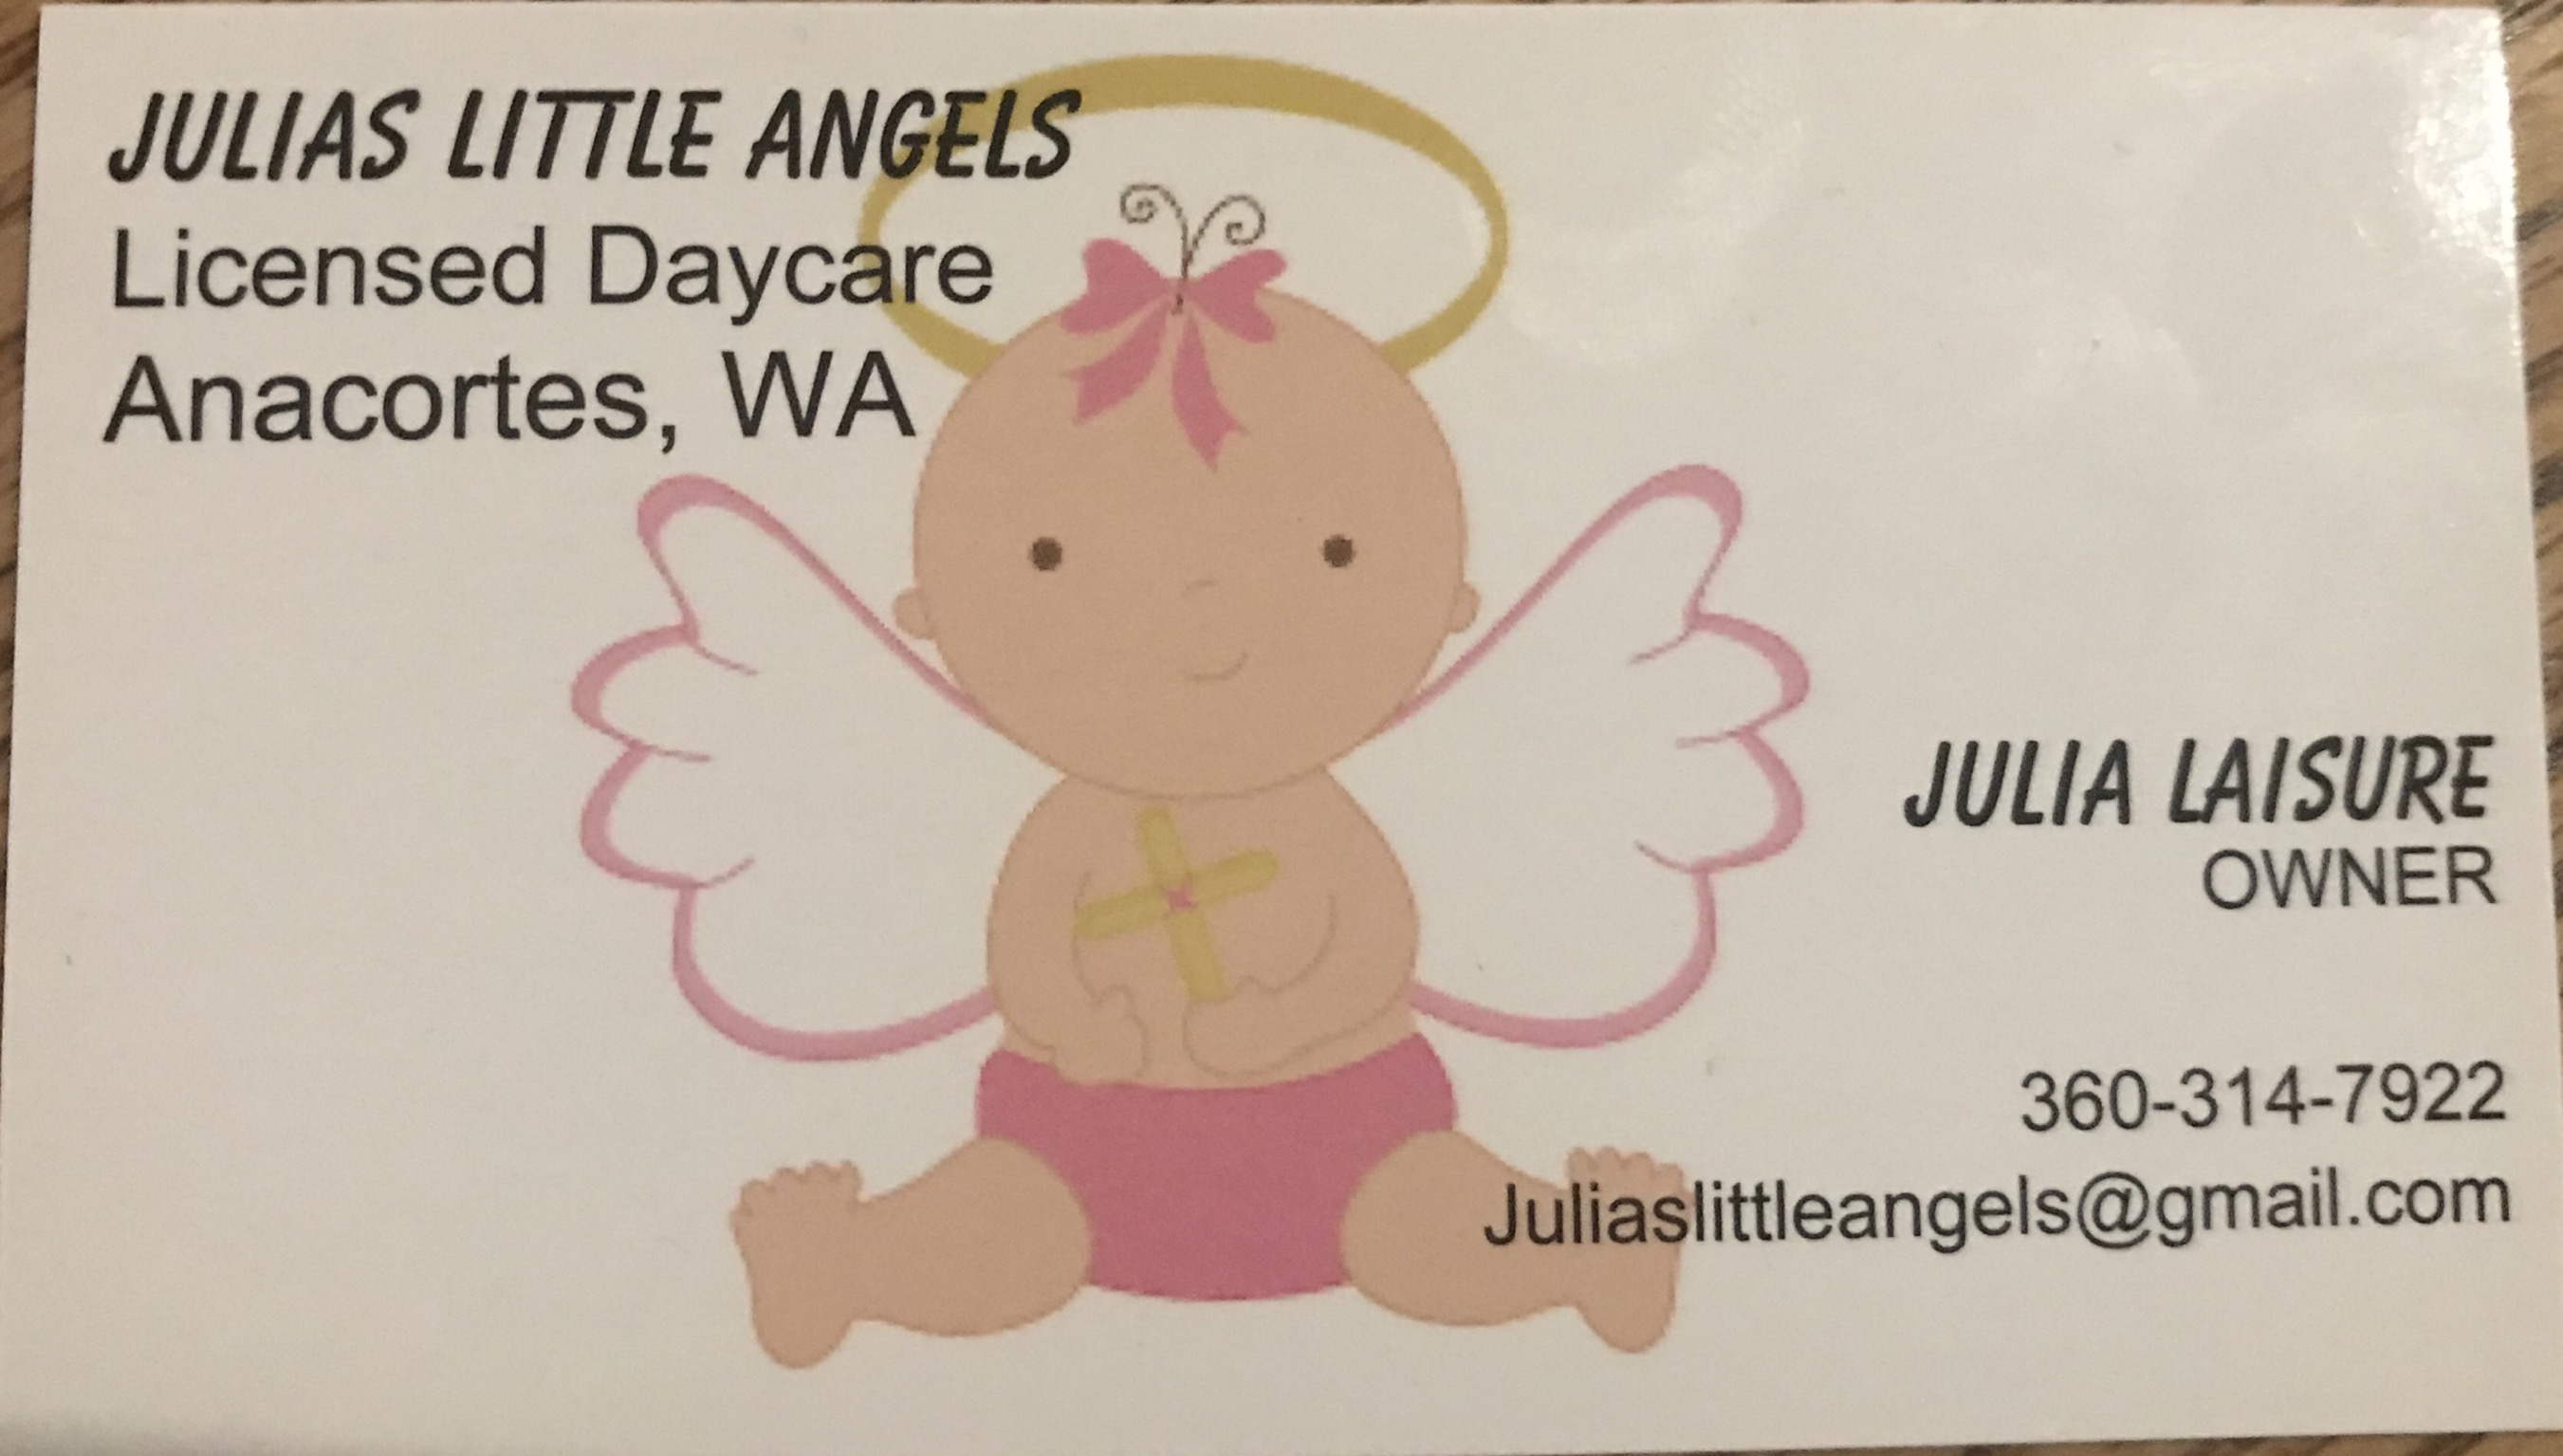 Julias Little Angels